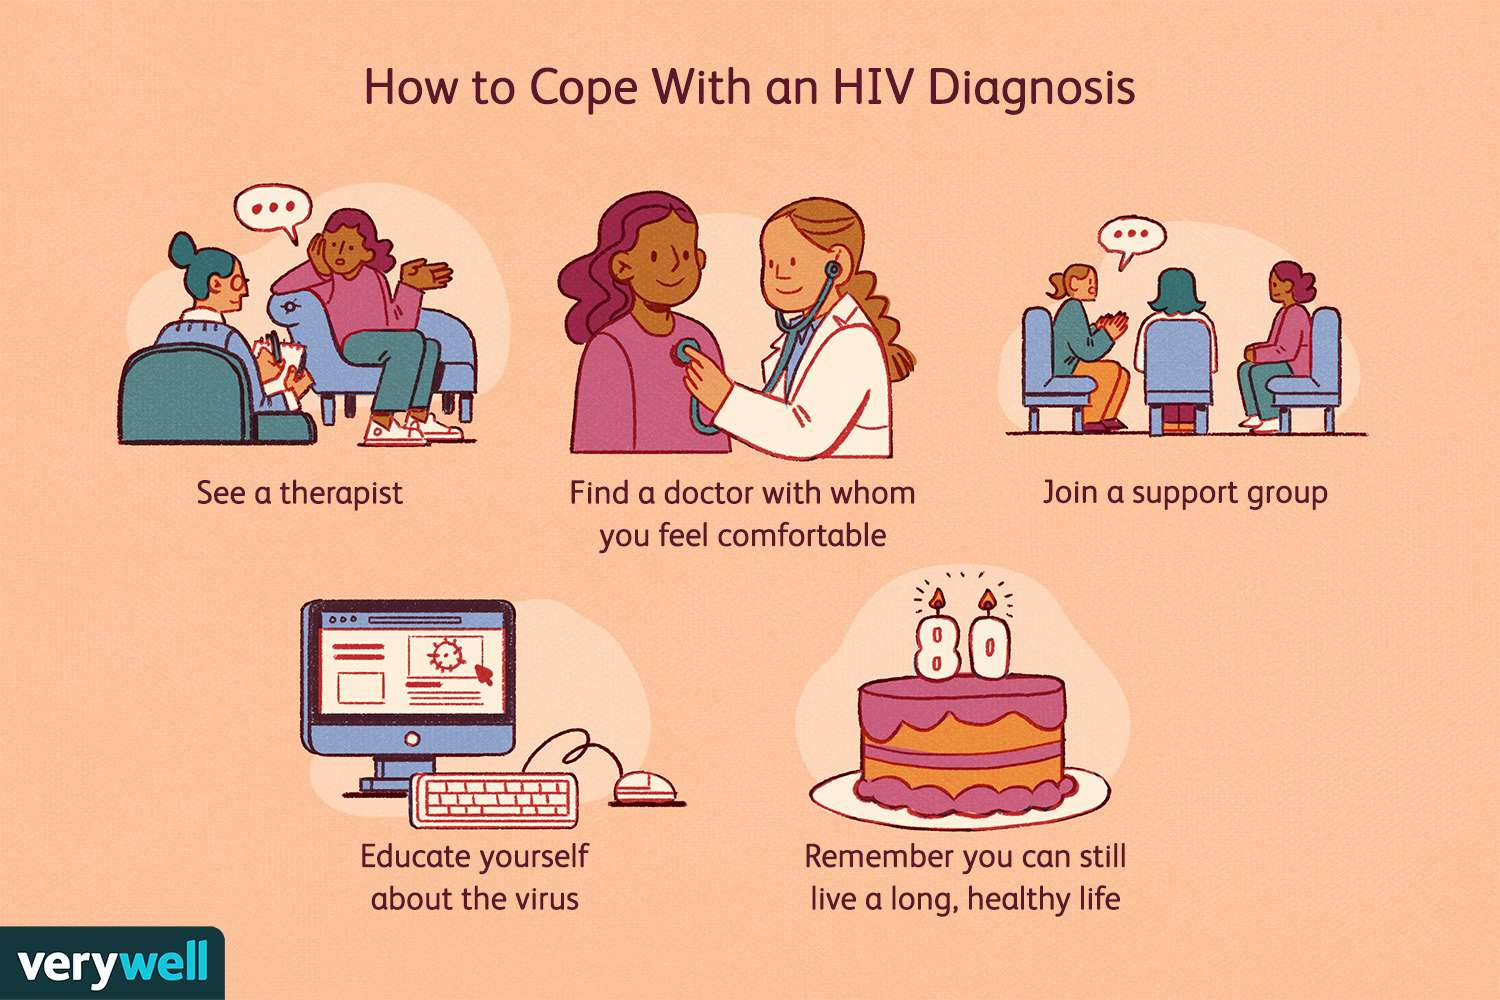 How to Cope With an HIV Diagnosis